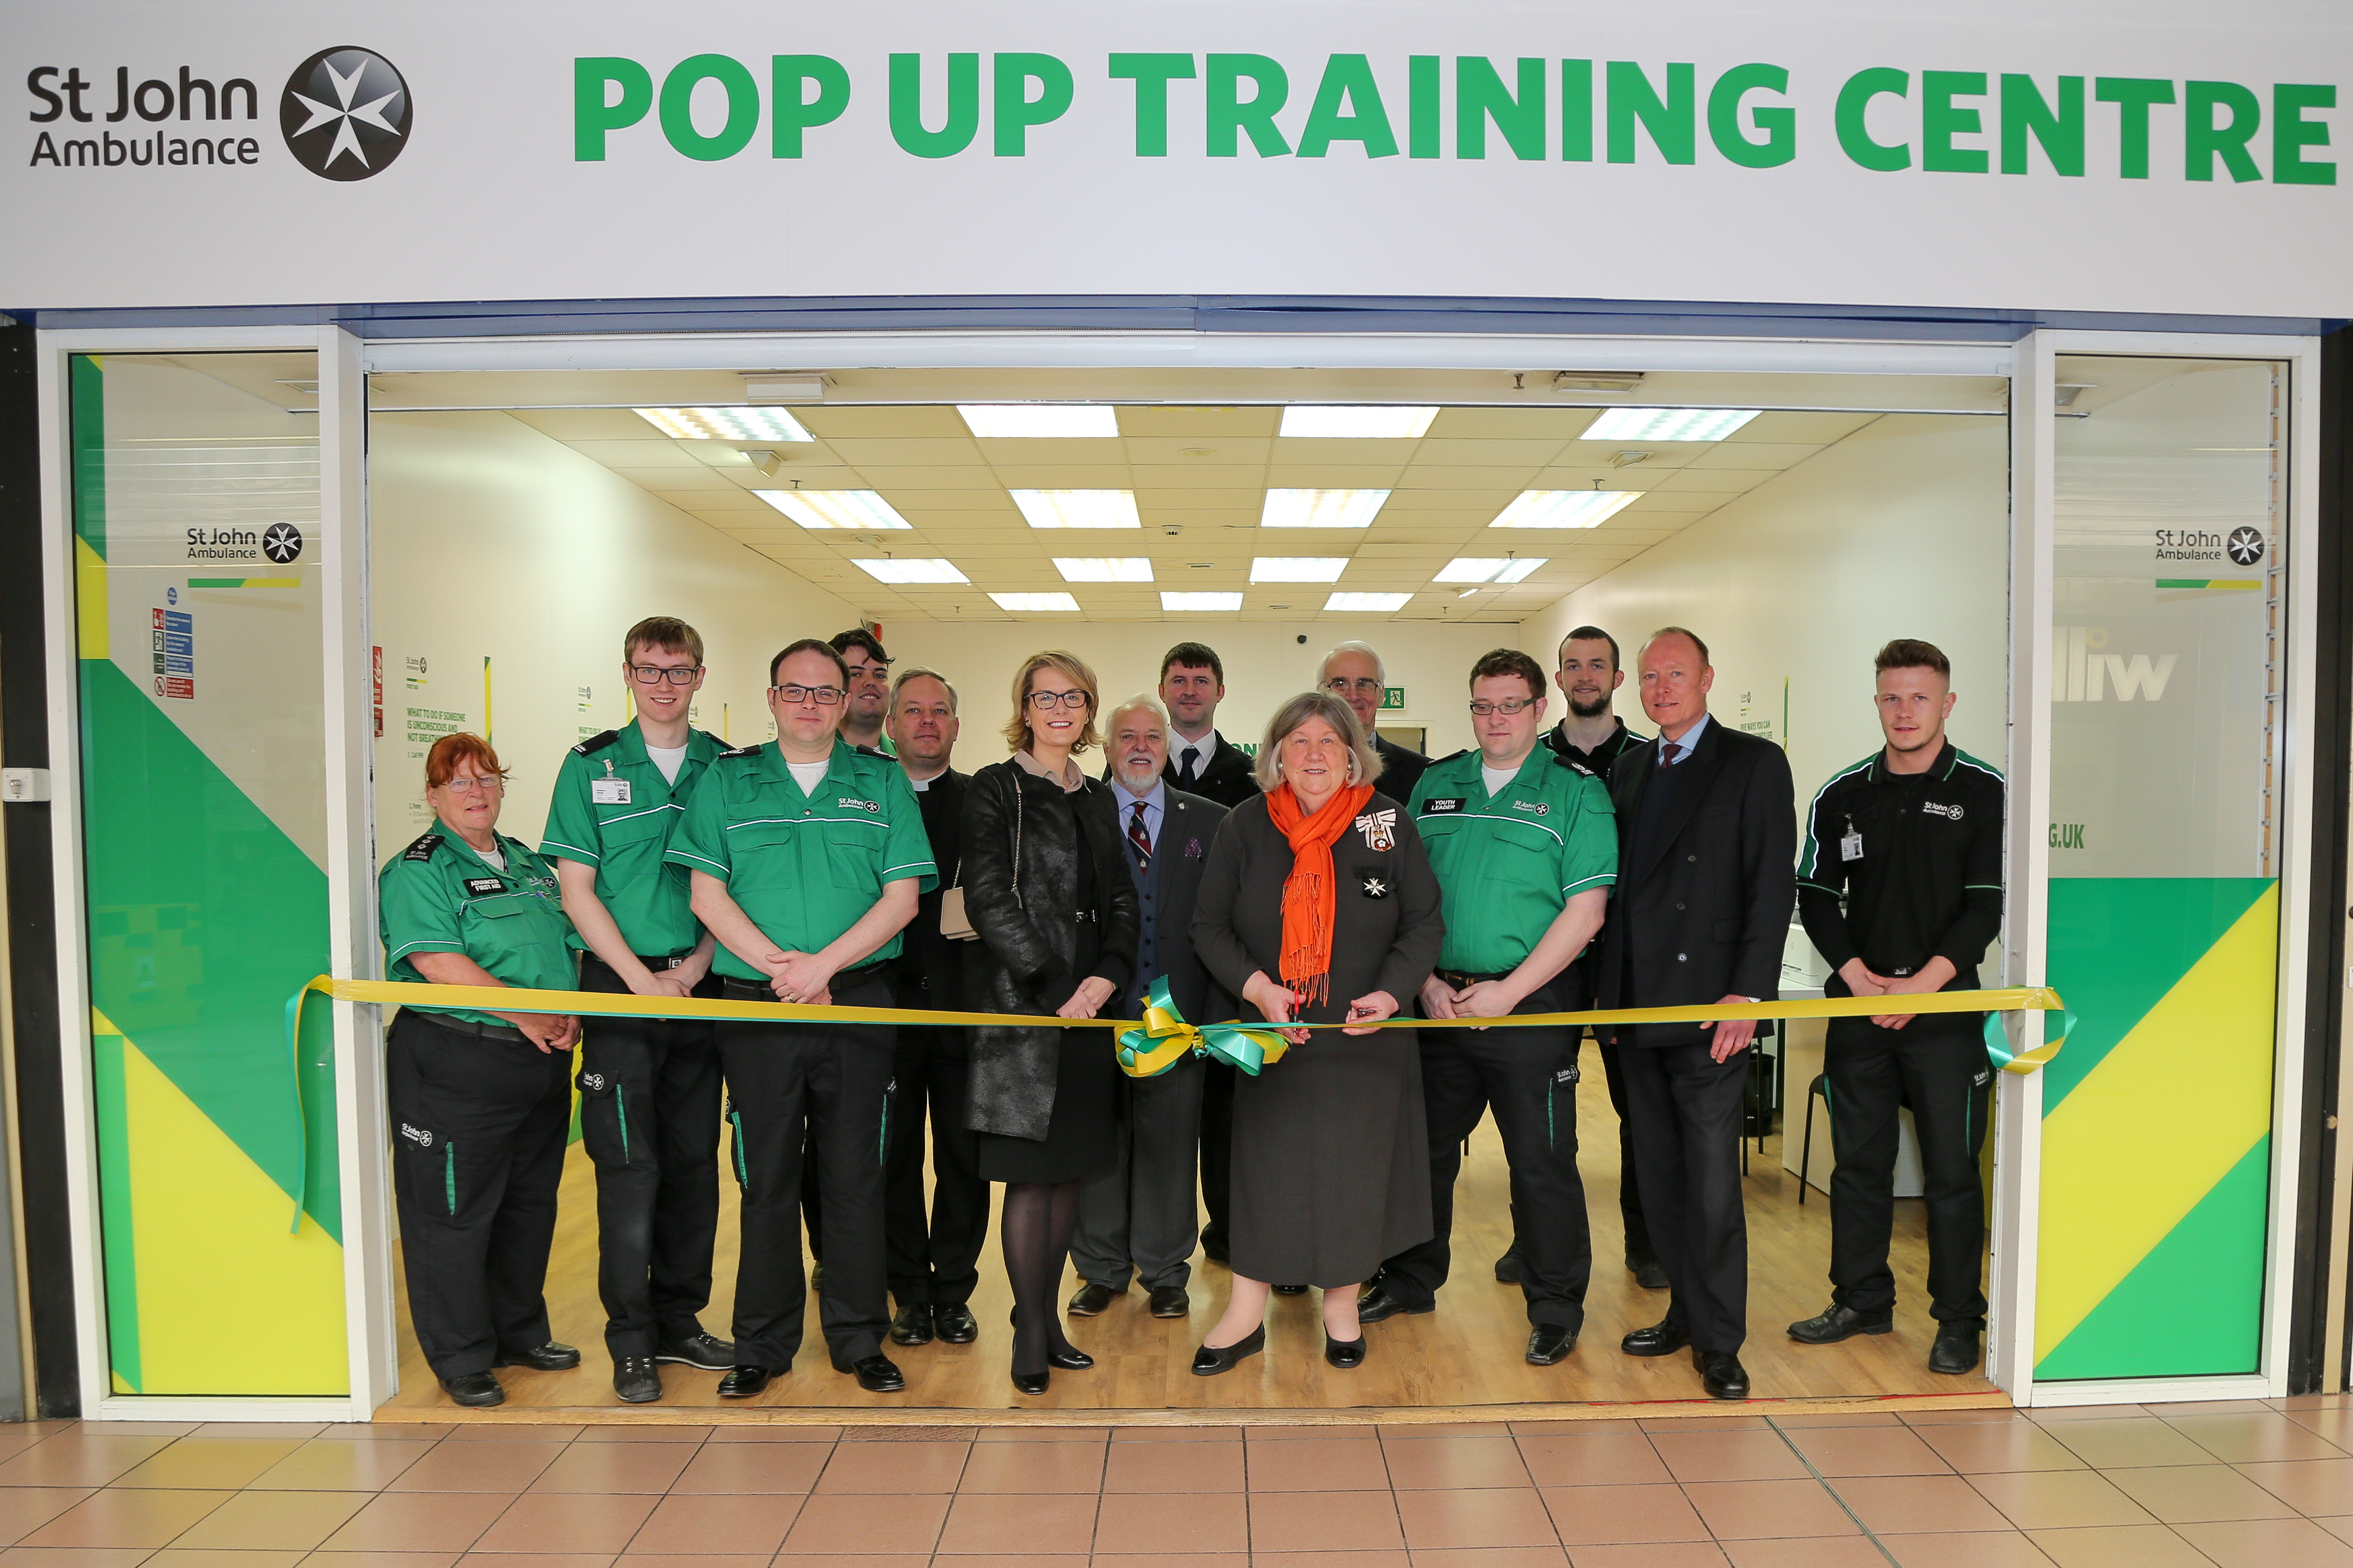 First aid post pops up at shopping centre